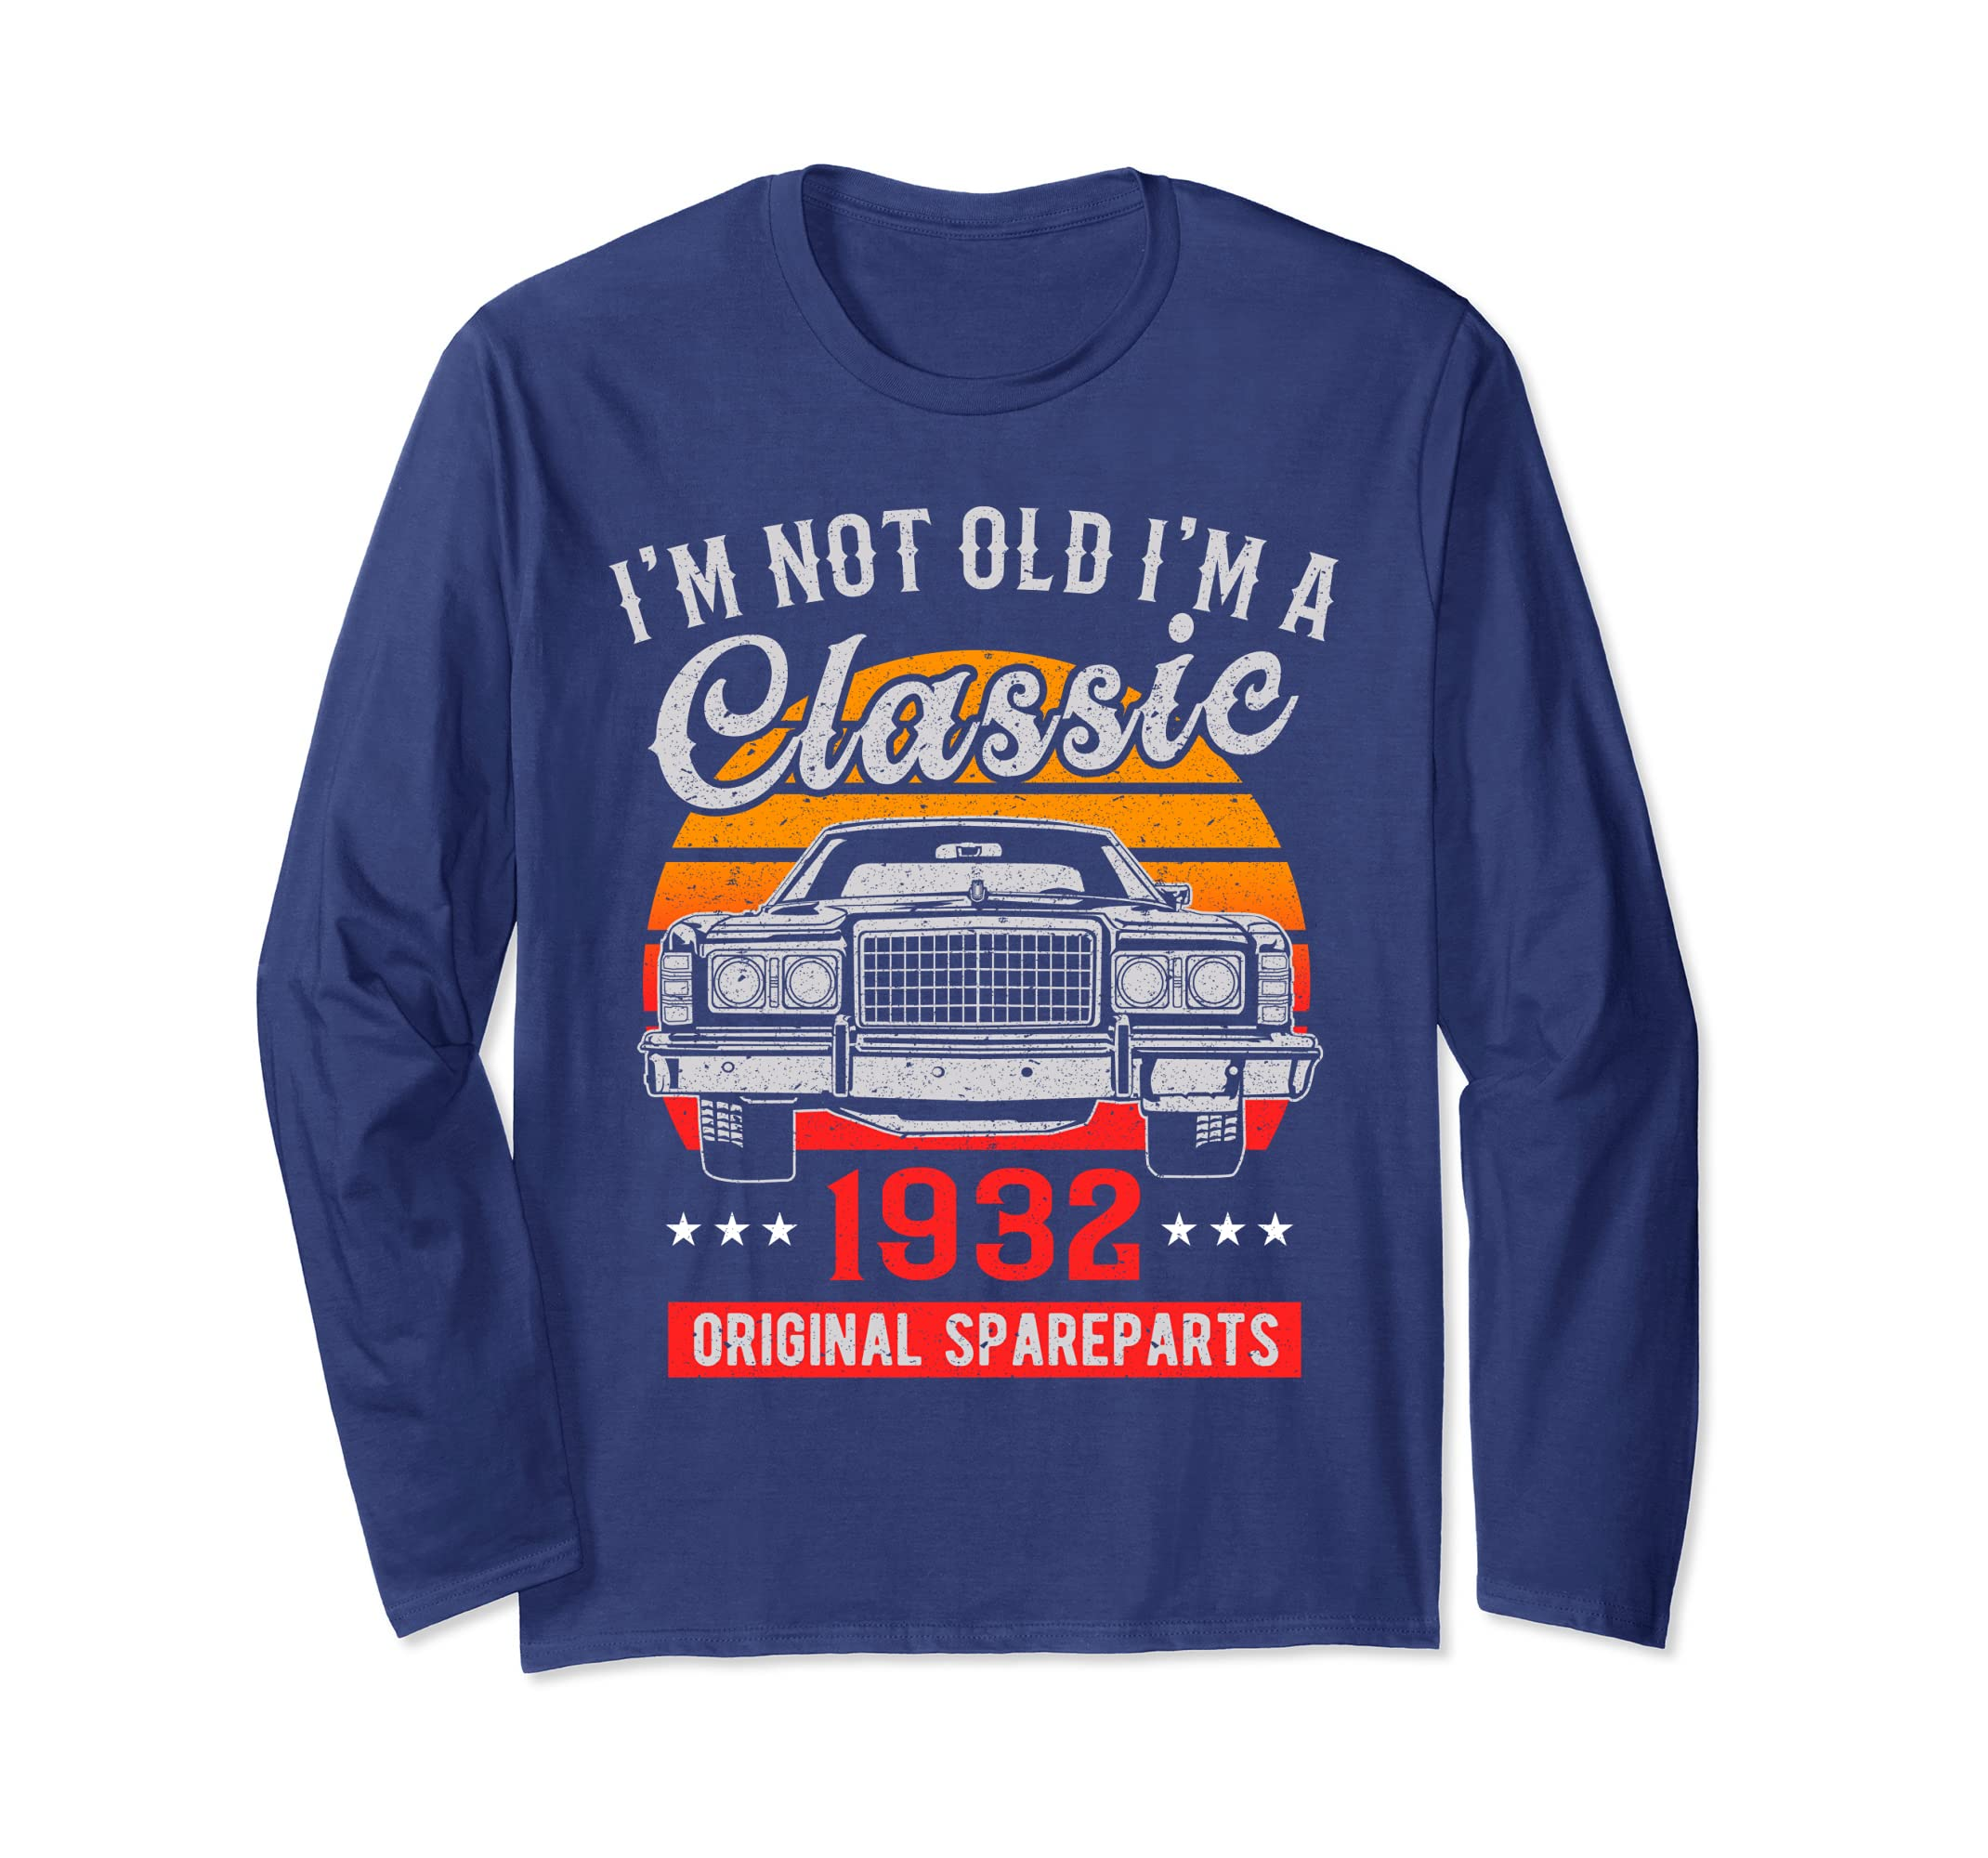 86th Birthday Long Sleeves I'm not Old I'm a Classic 1932